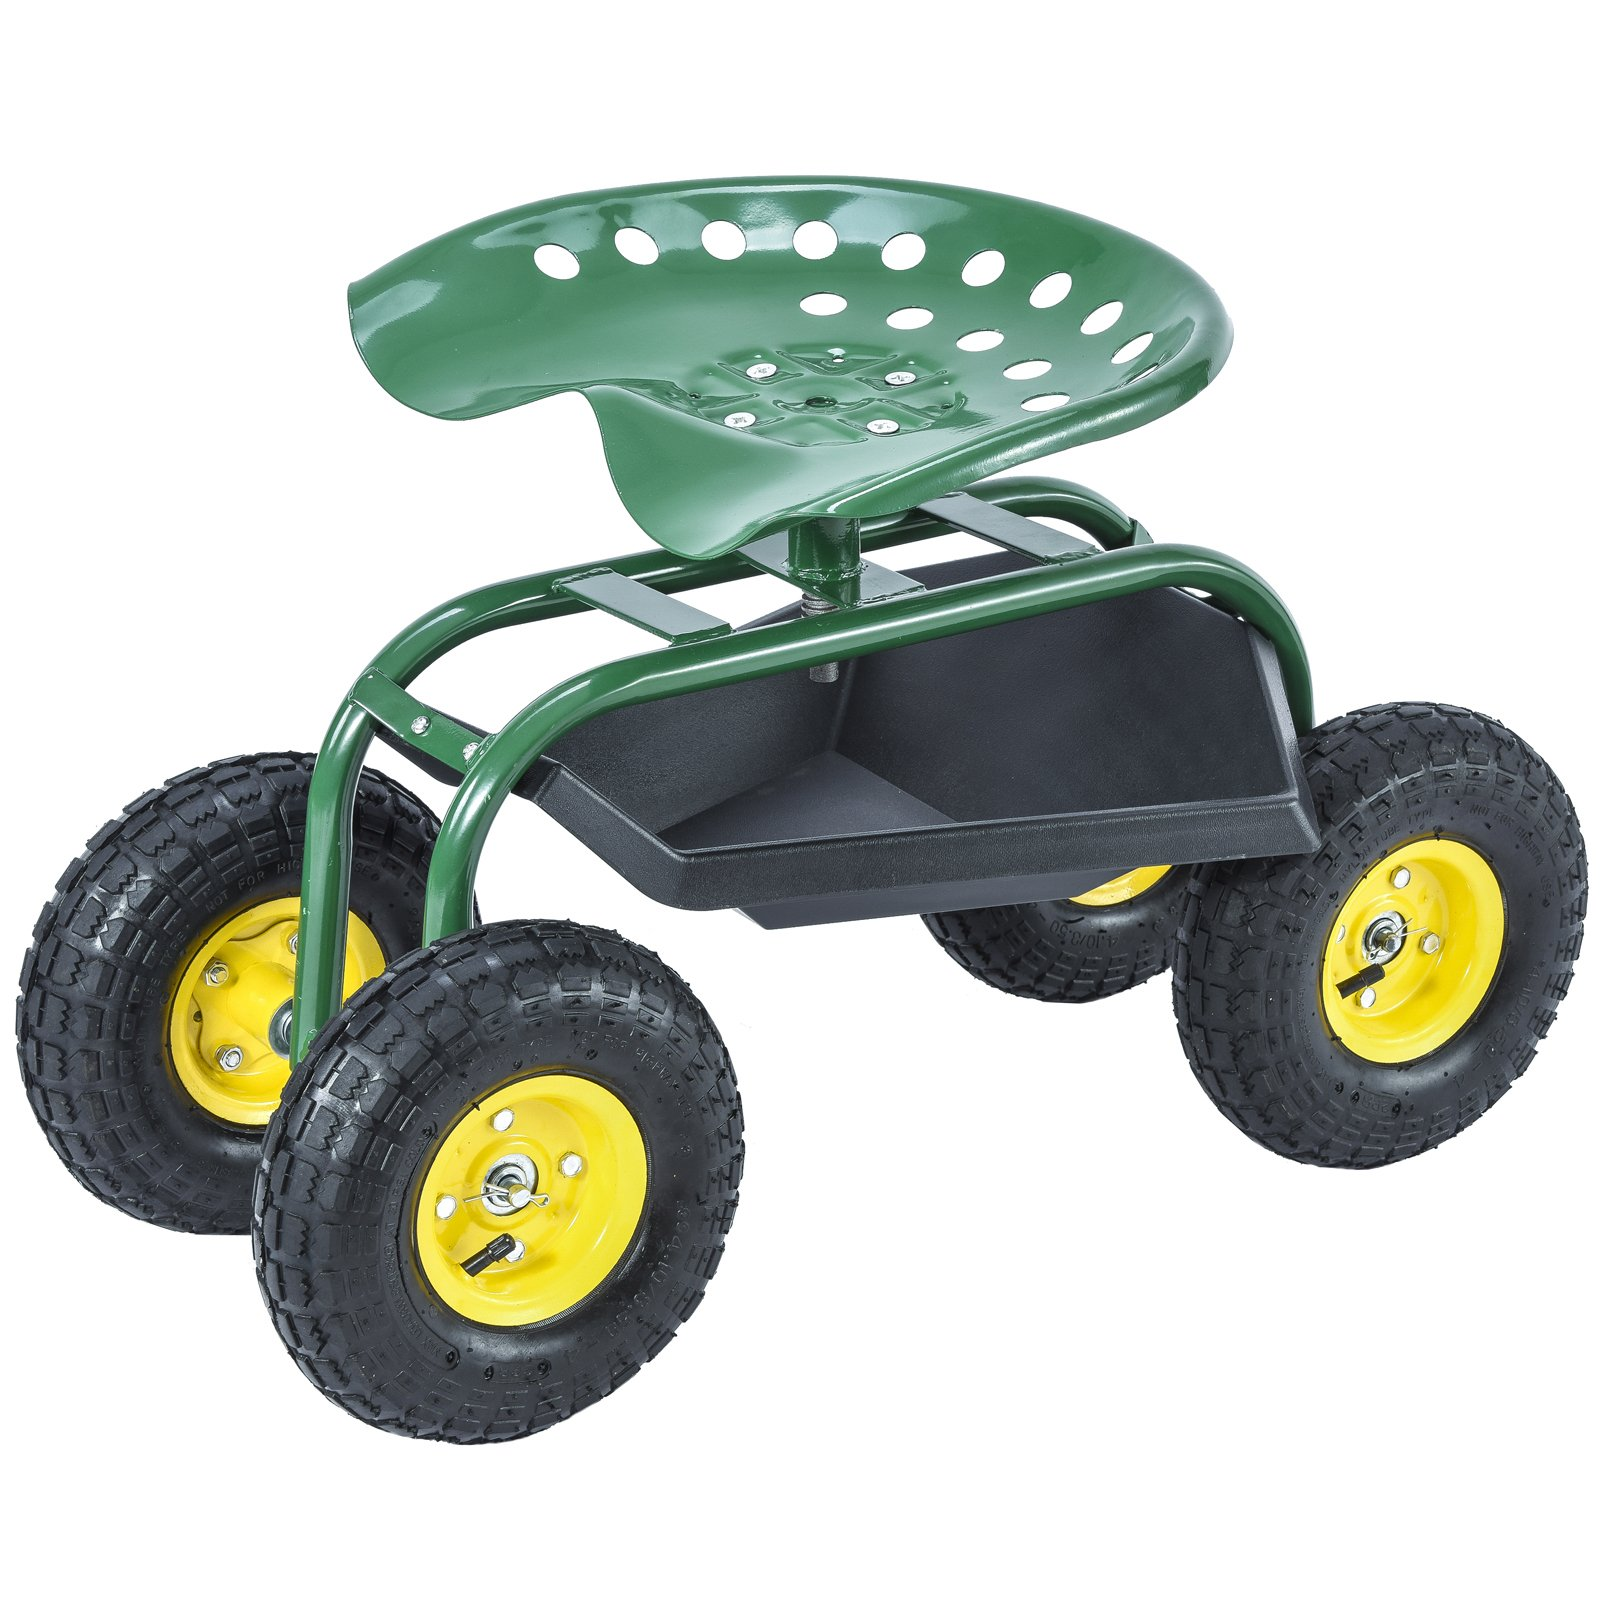 SUNCOO Garden Rolling Scooter with Seat and Tray for Gardening, Weeding and Lawn Care, Heavy-Duty 330lbs Capacity, Green by SUNCOO